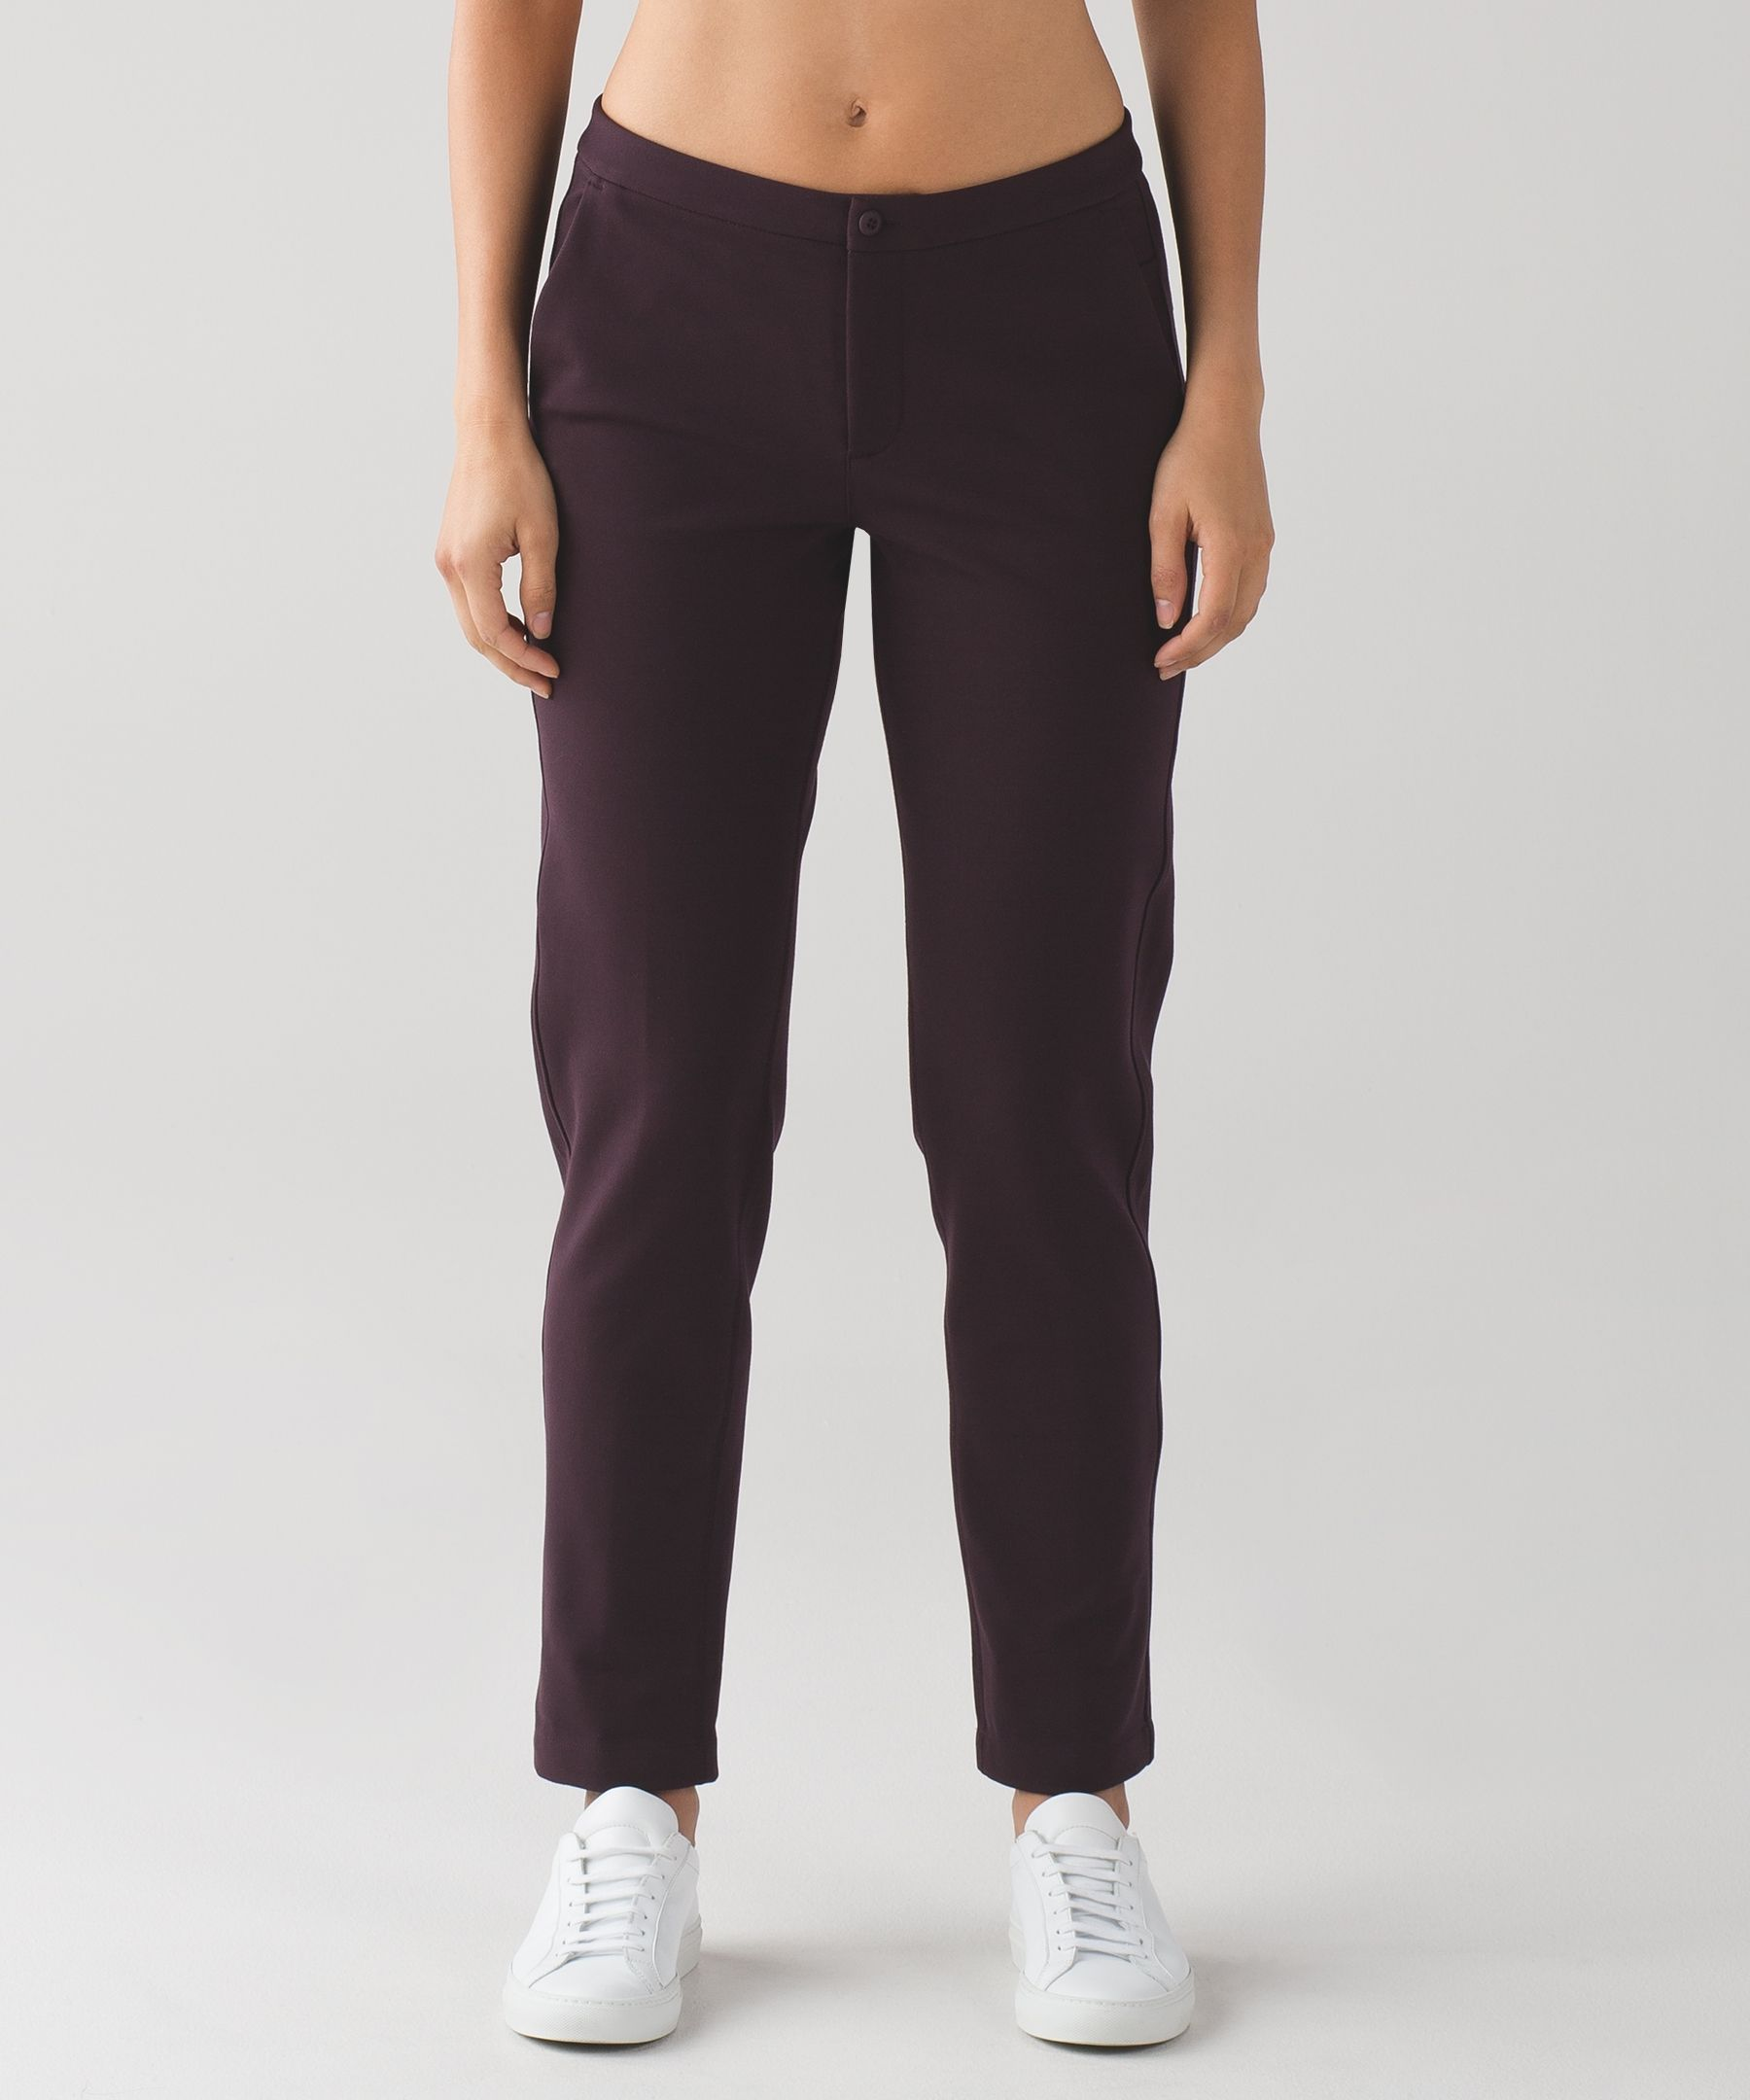 City Trek Trouser Ponte | Products | Pants for women, Pants